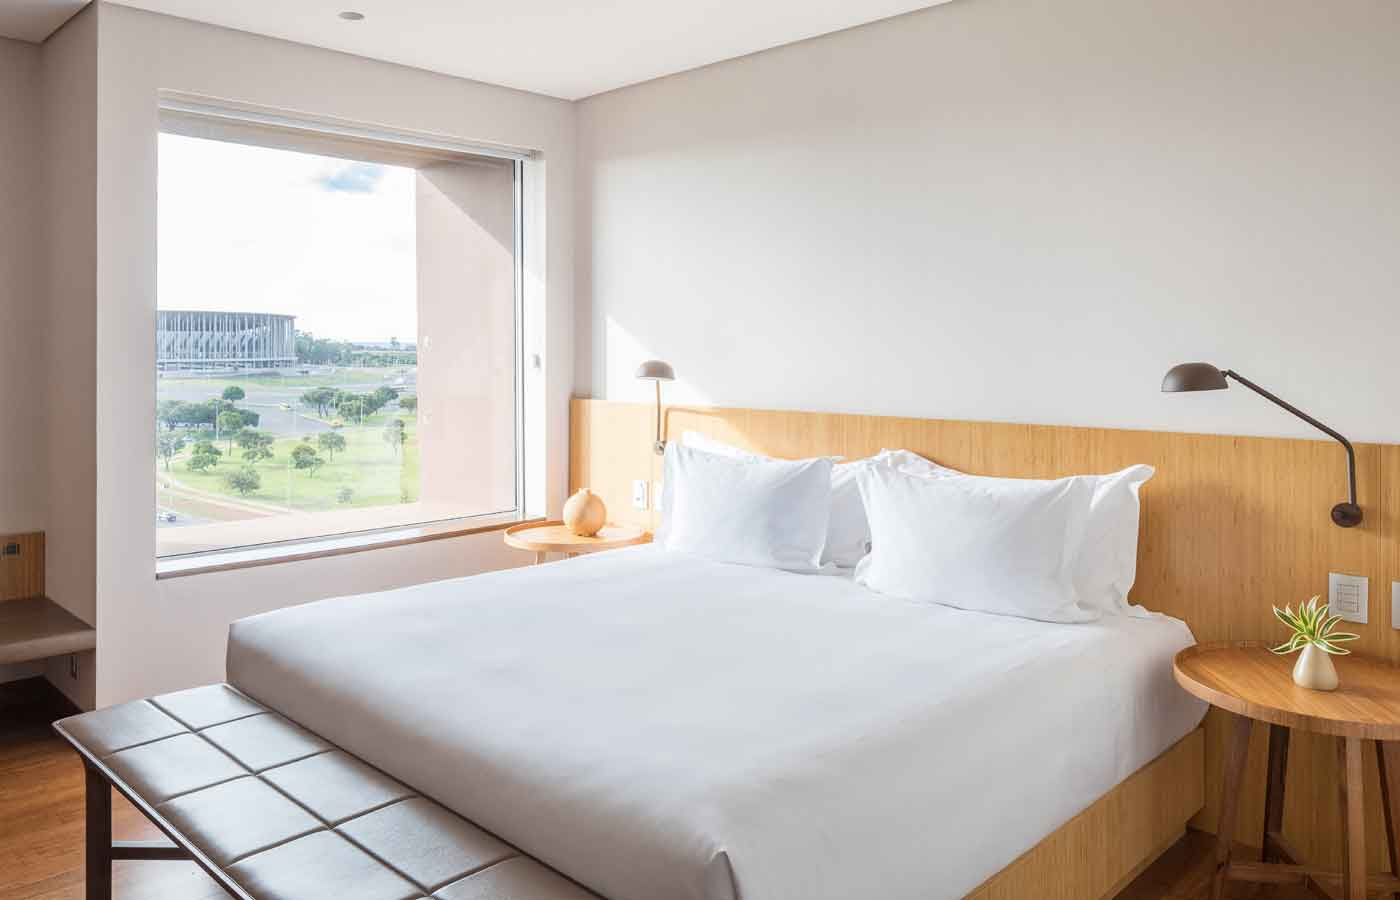 accommodation at at the luxury B-Hotel in Brasilia Brazil